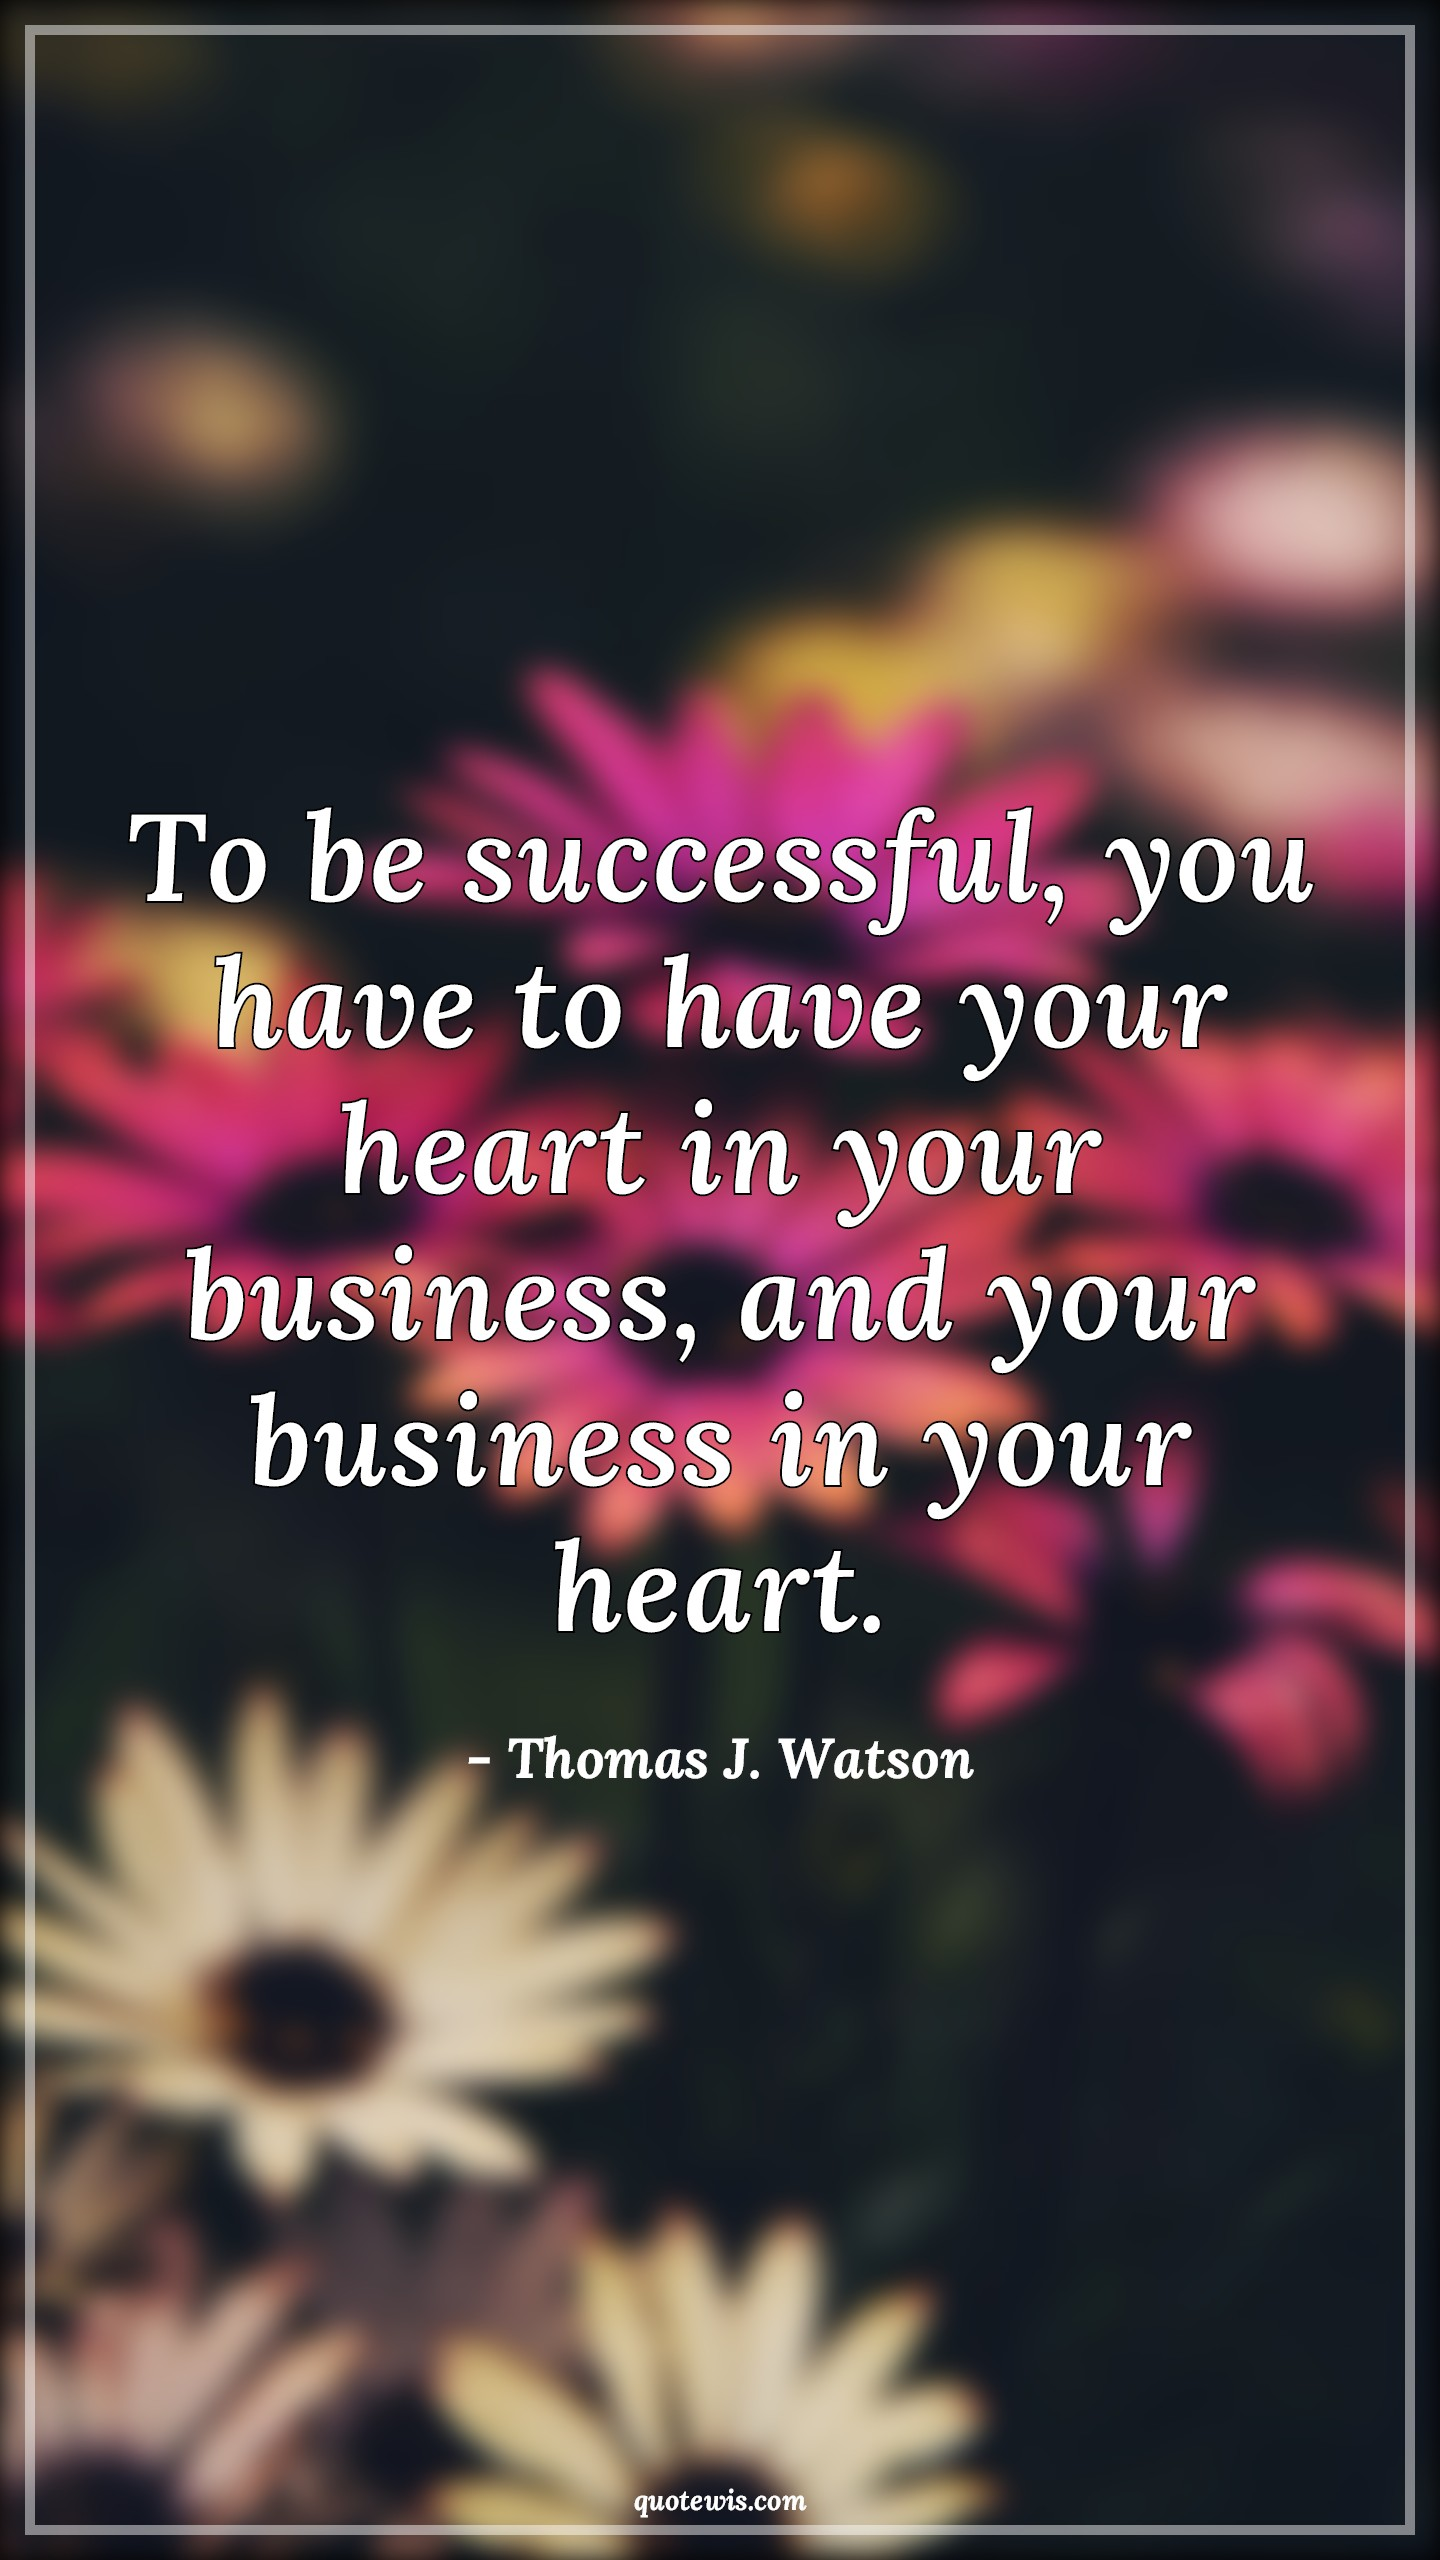 To be successful, you have to have your heart in your business, and your business in your heart.